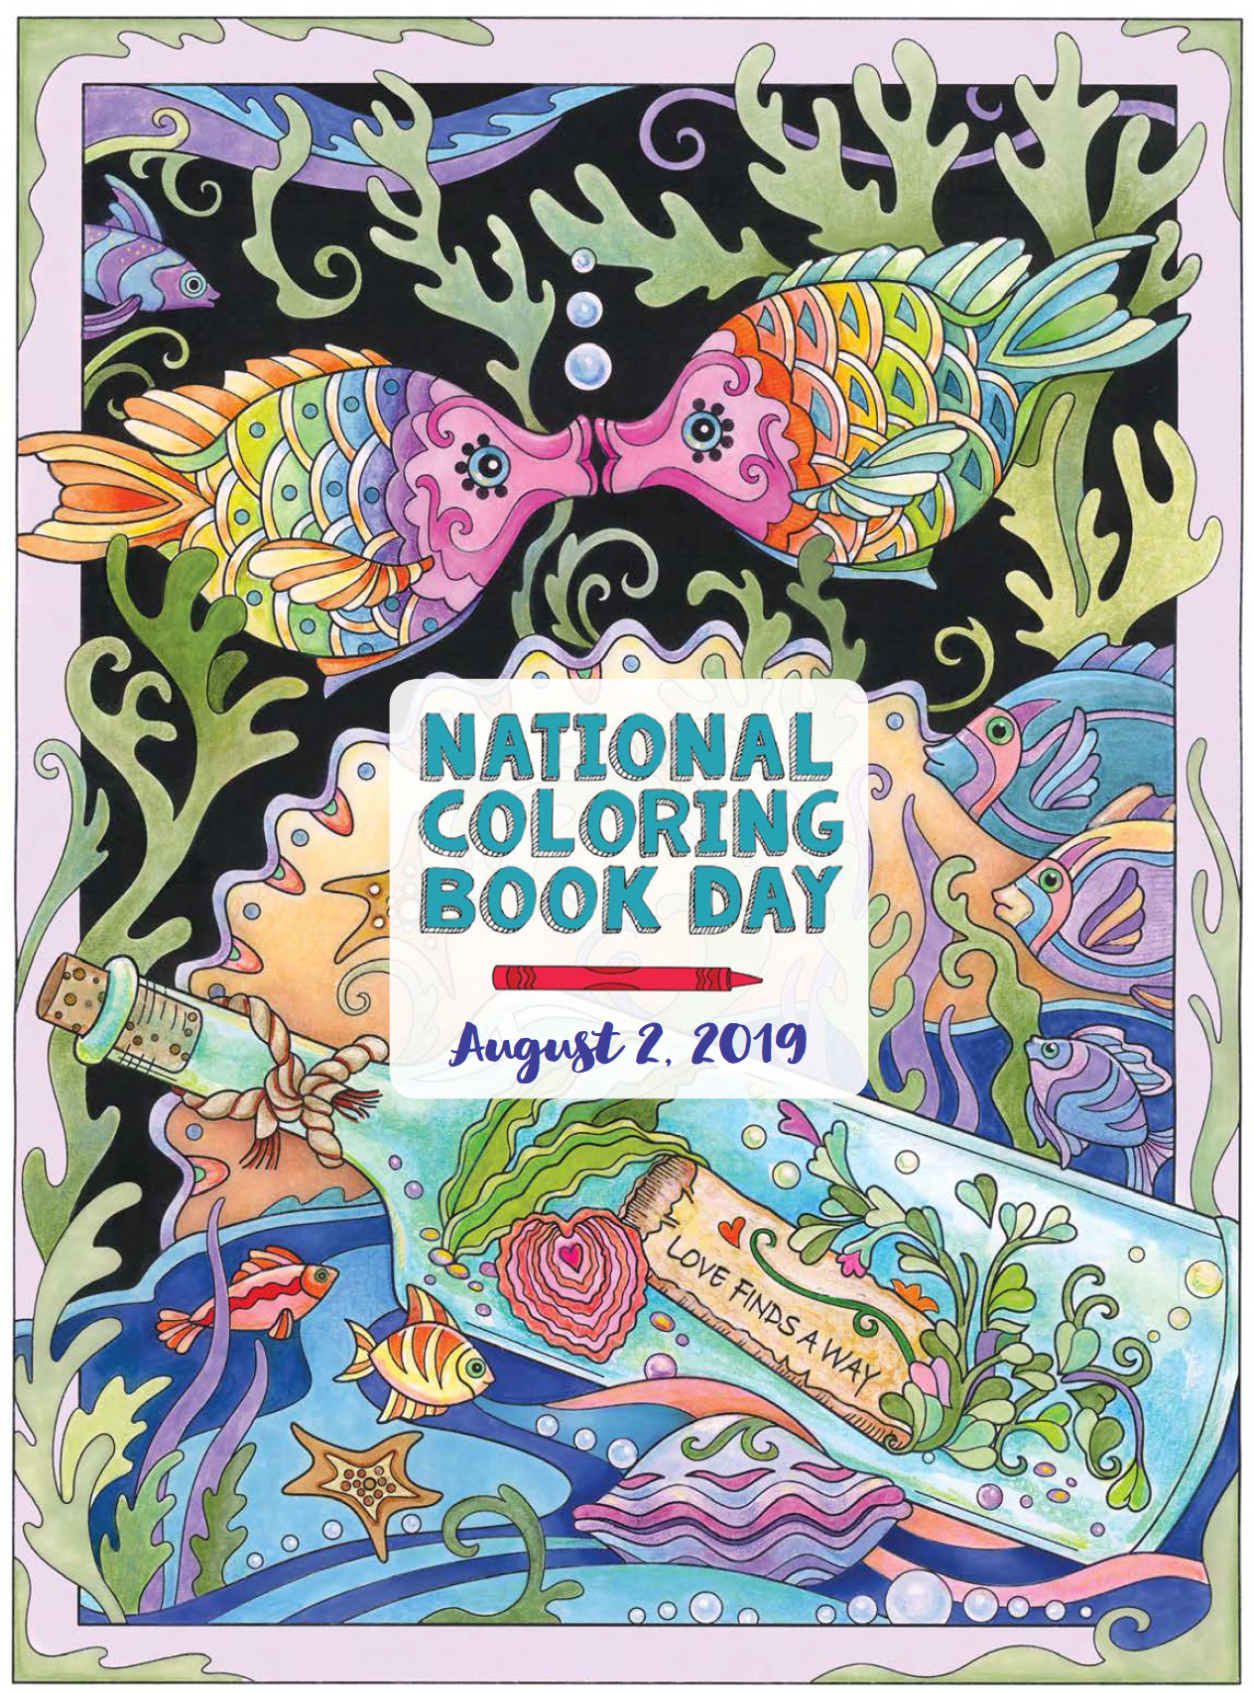 Today Is National Coloring Book Day Stop By The Library Anytime Between 9 5 Today To Spend Some Time Relaxing A Coloring Books Books Coloring Sheets For Kids